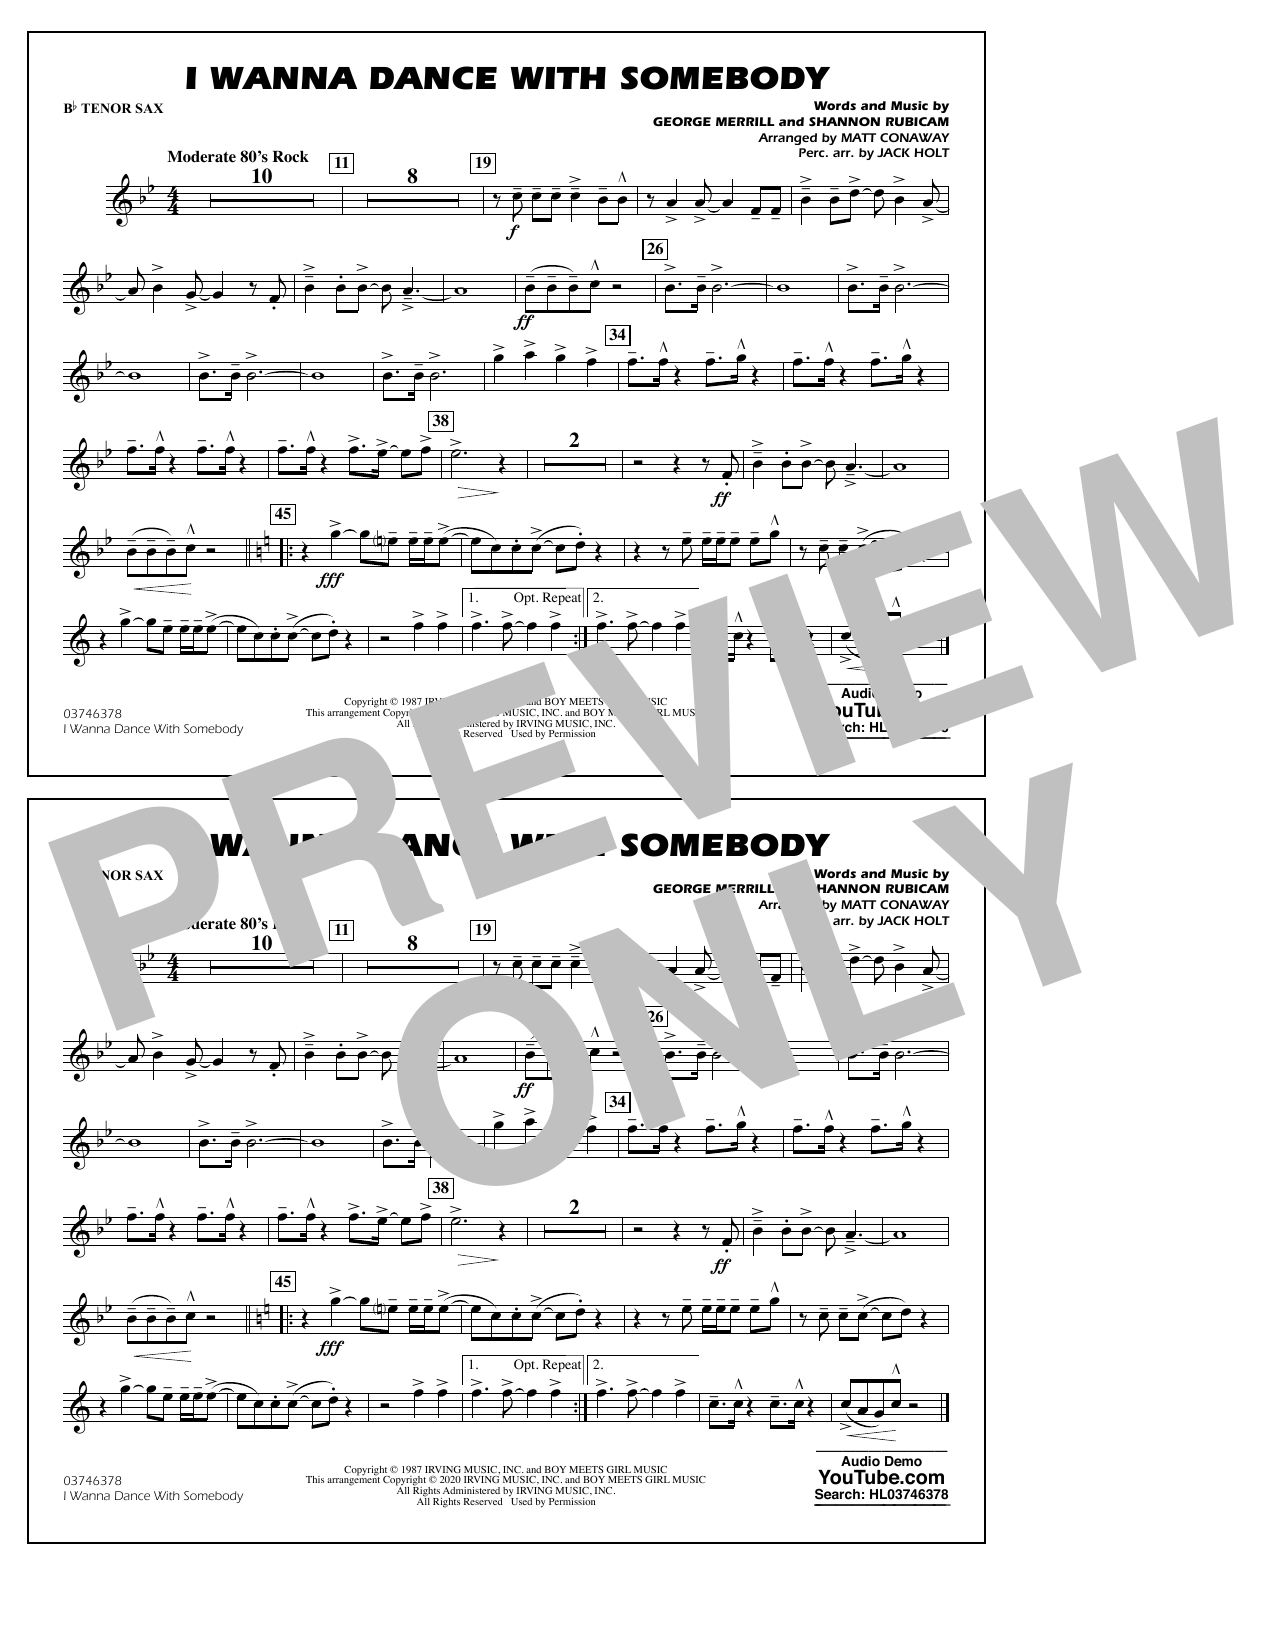 I Wanna Dance with Somebody (arr. Conaway and Holt) - Bb Tenor Sax Sheet Music